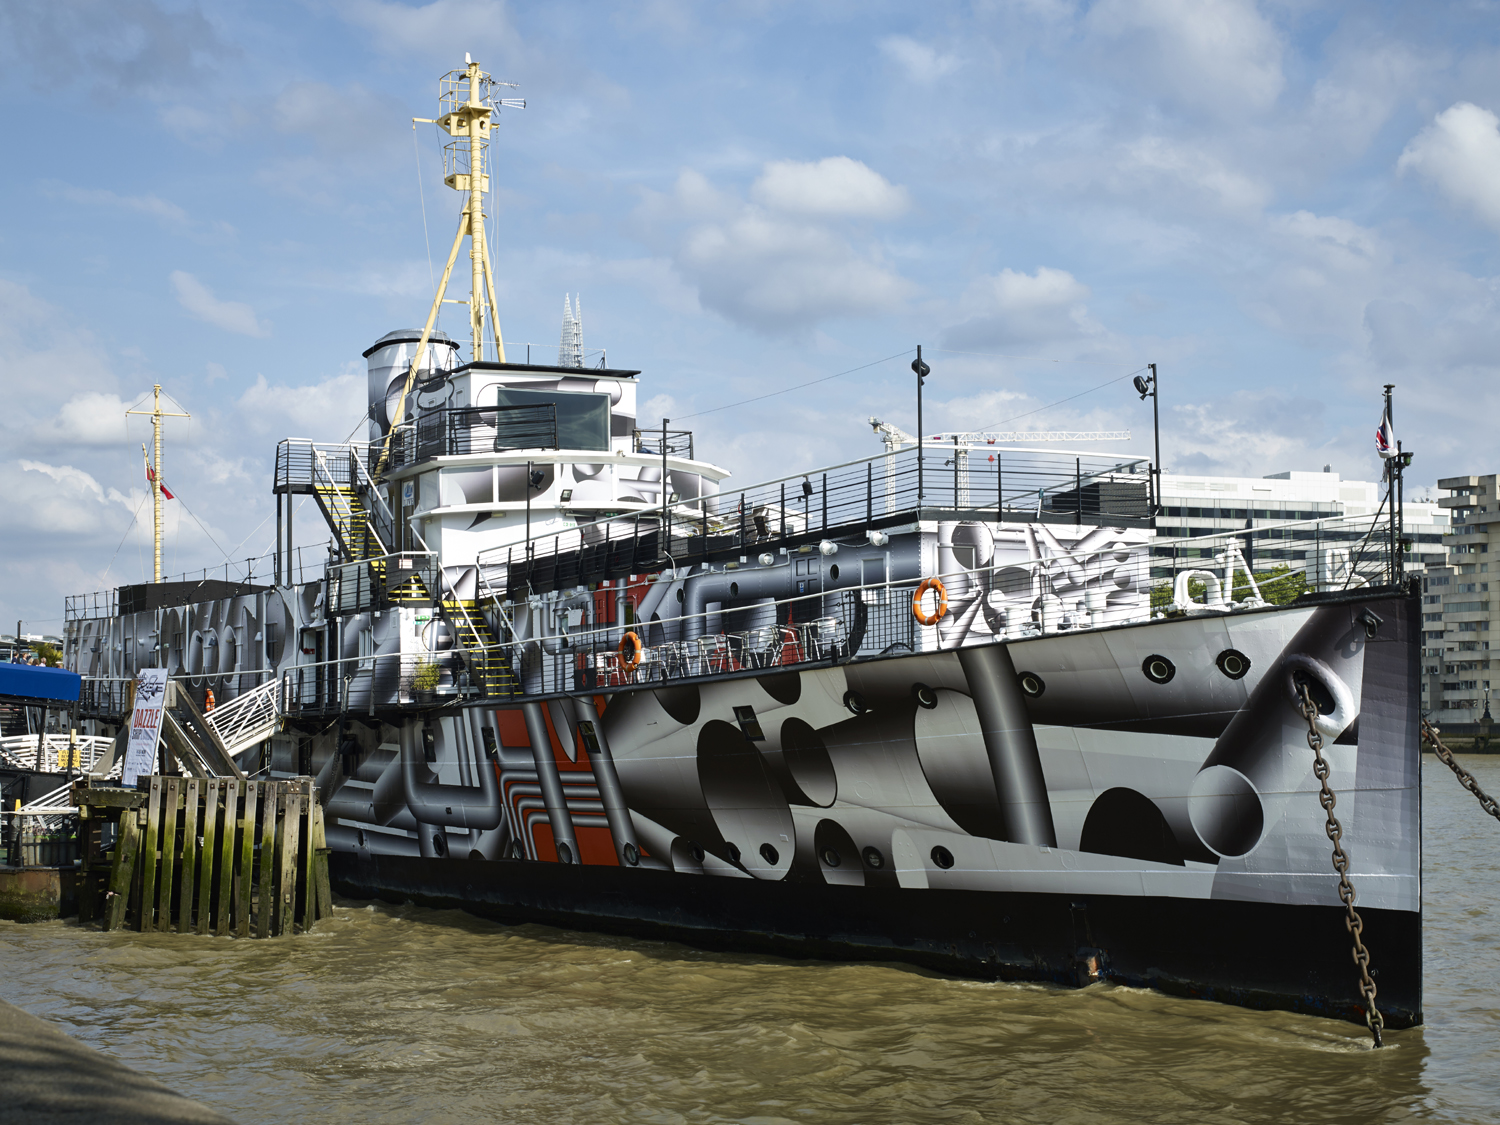 Dazzle Ship, Tobias Rehberger, 2014. Image credit - Stephen White